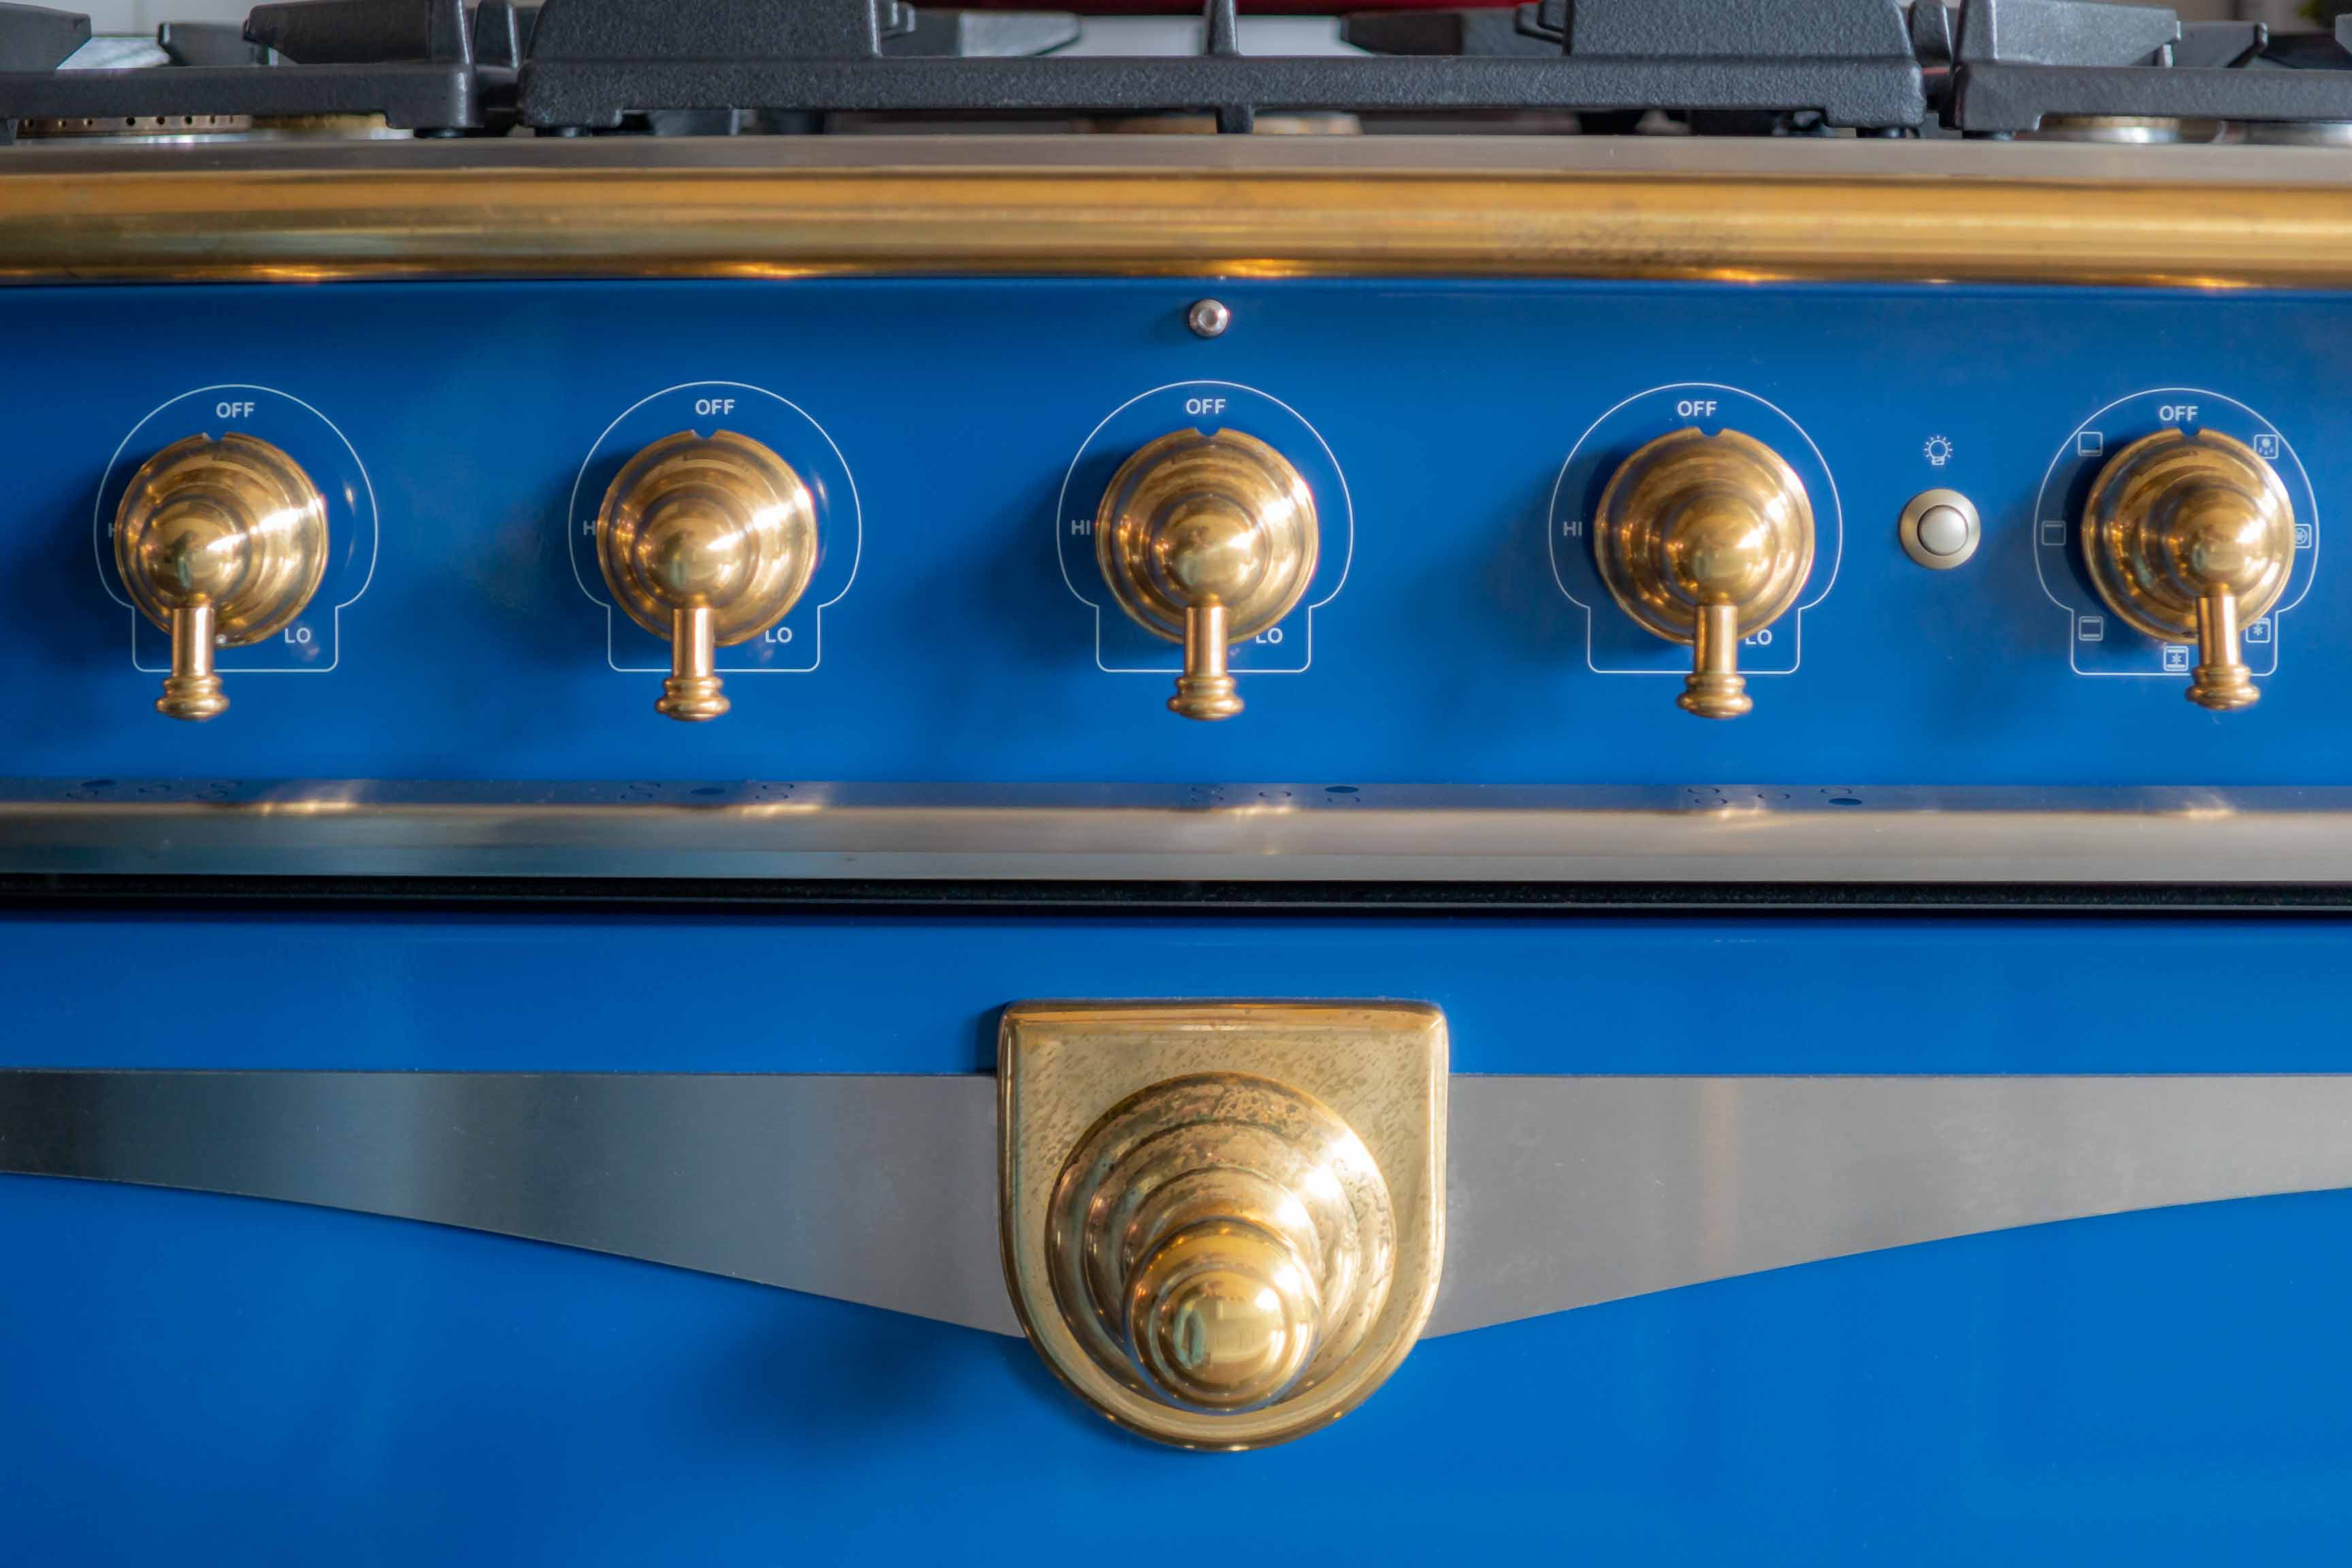 blue-french-stove-by-liz-caan-interior-design-TOWN-Renovation-and-design-in-the-city